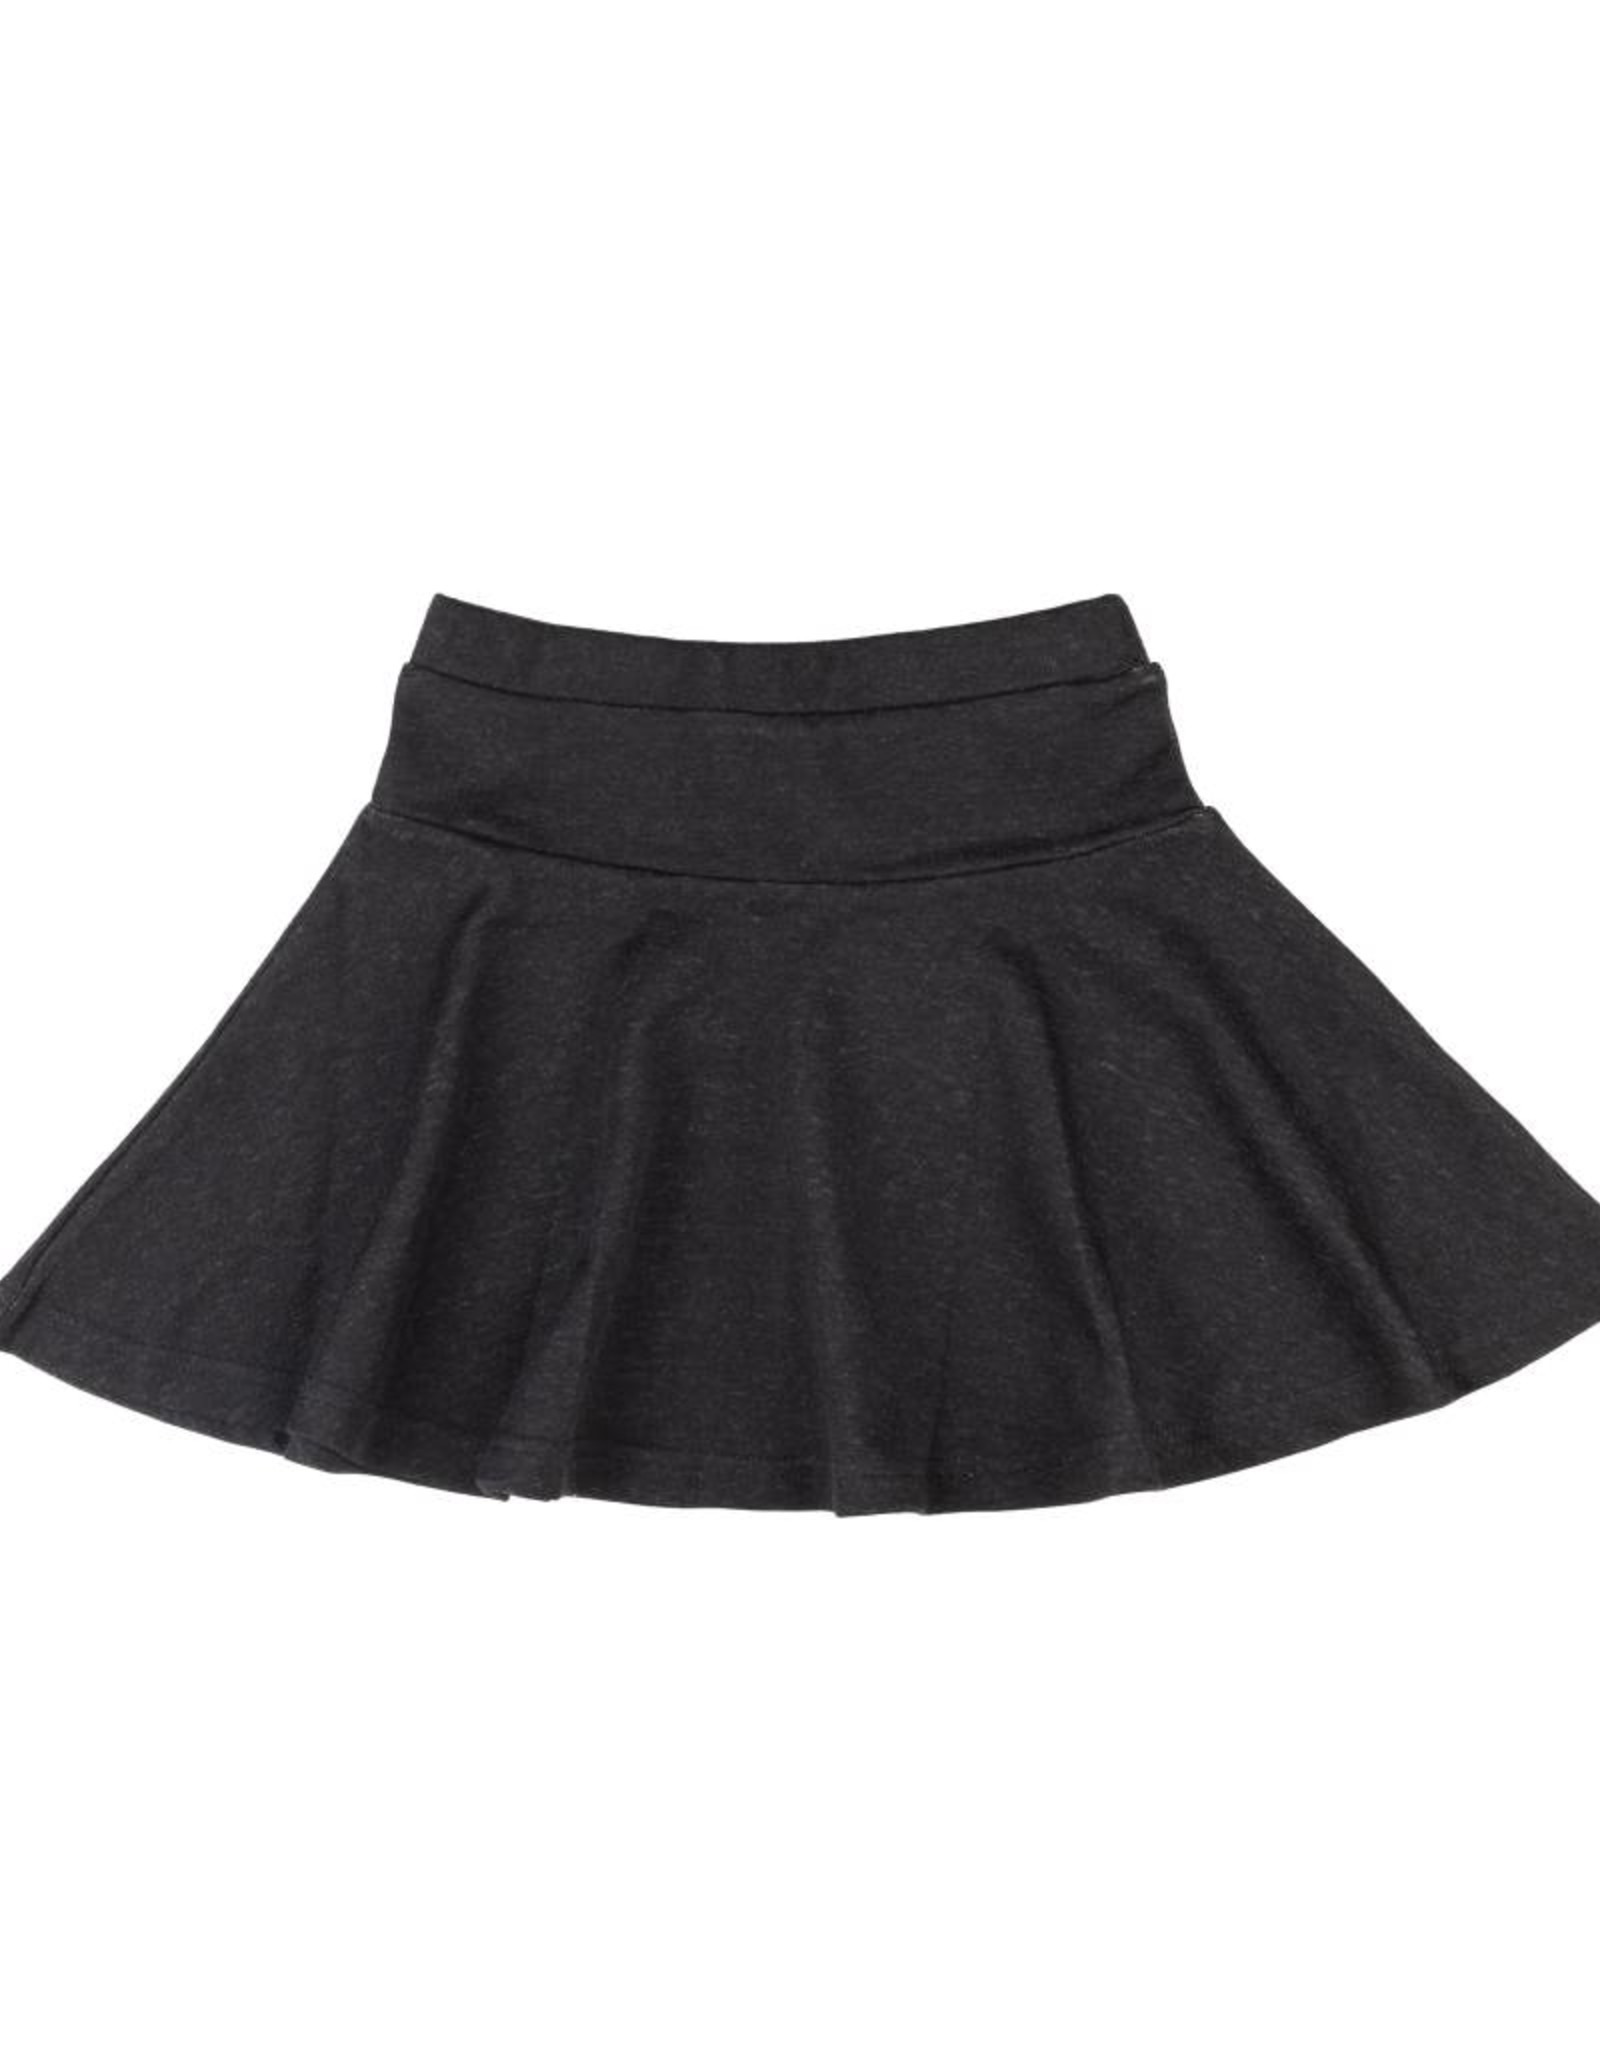 FIVE STAR Drop Waist Circle Skirt Black